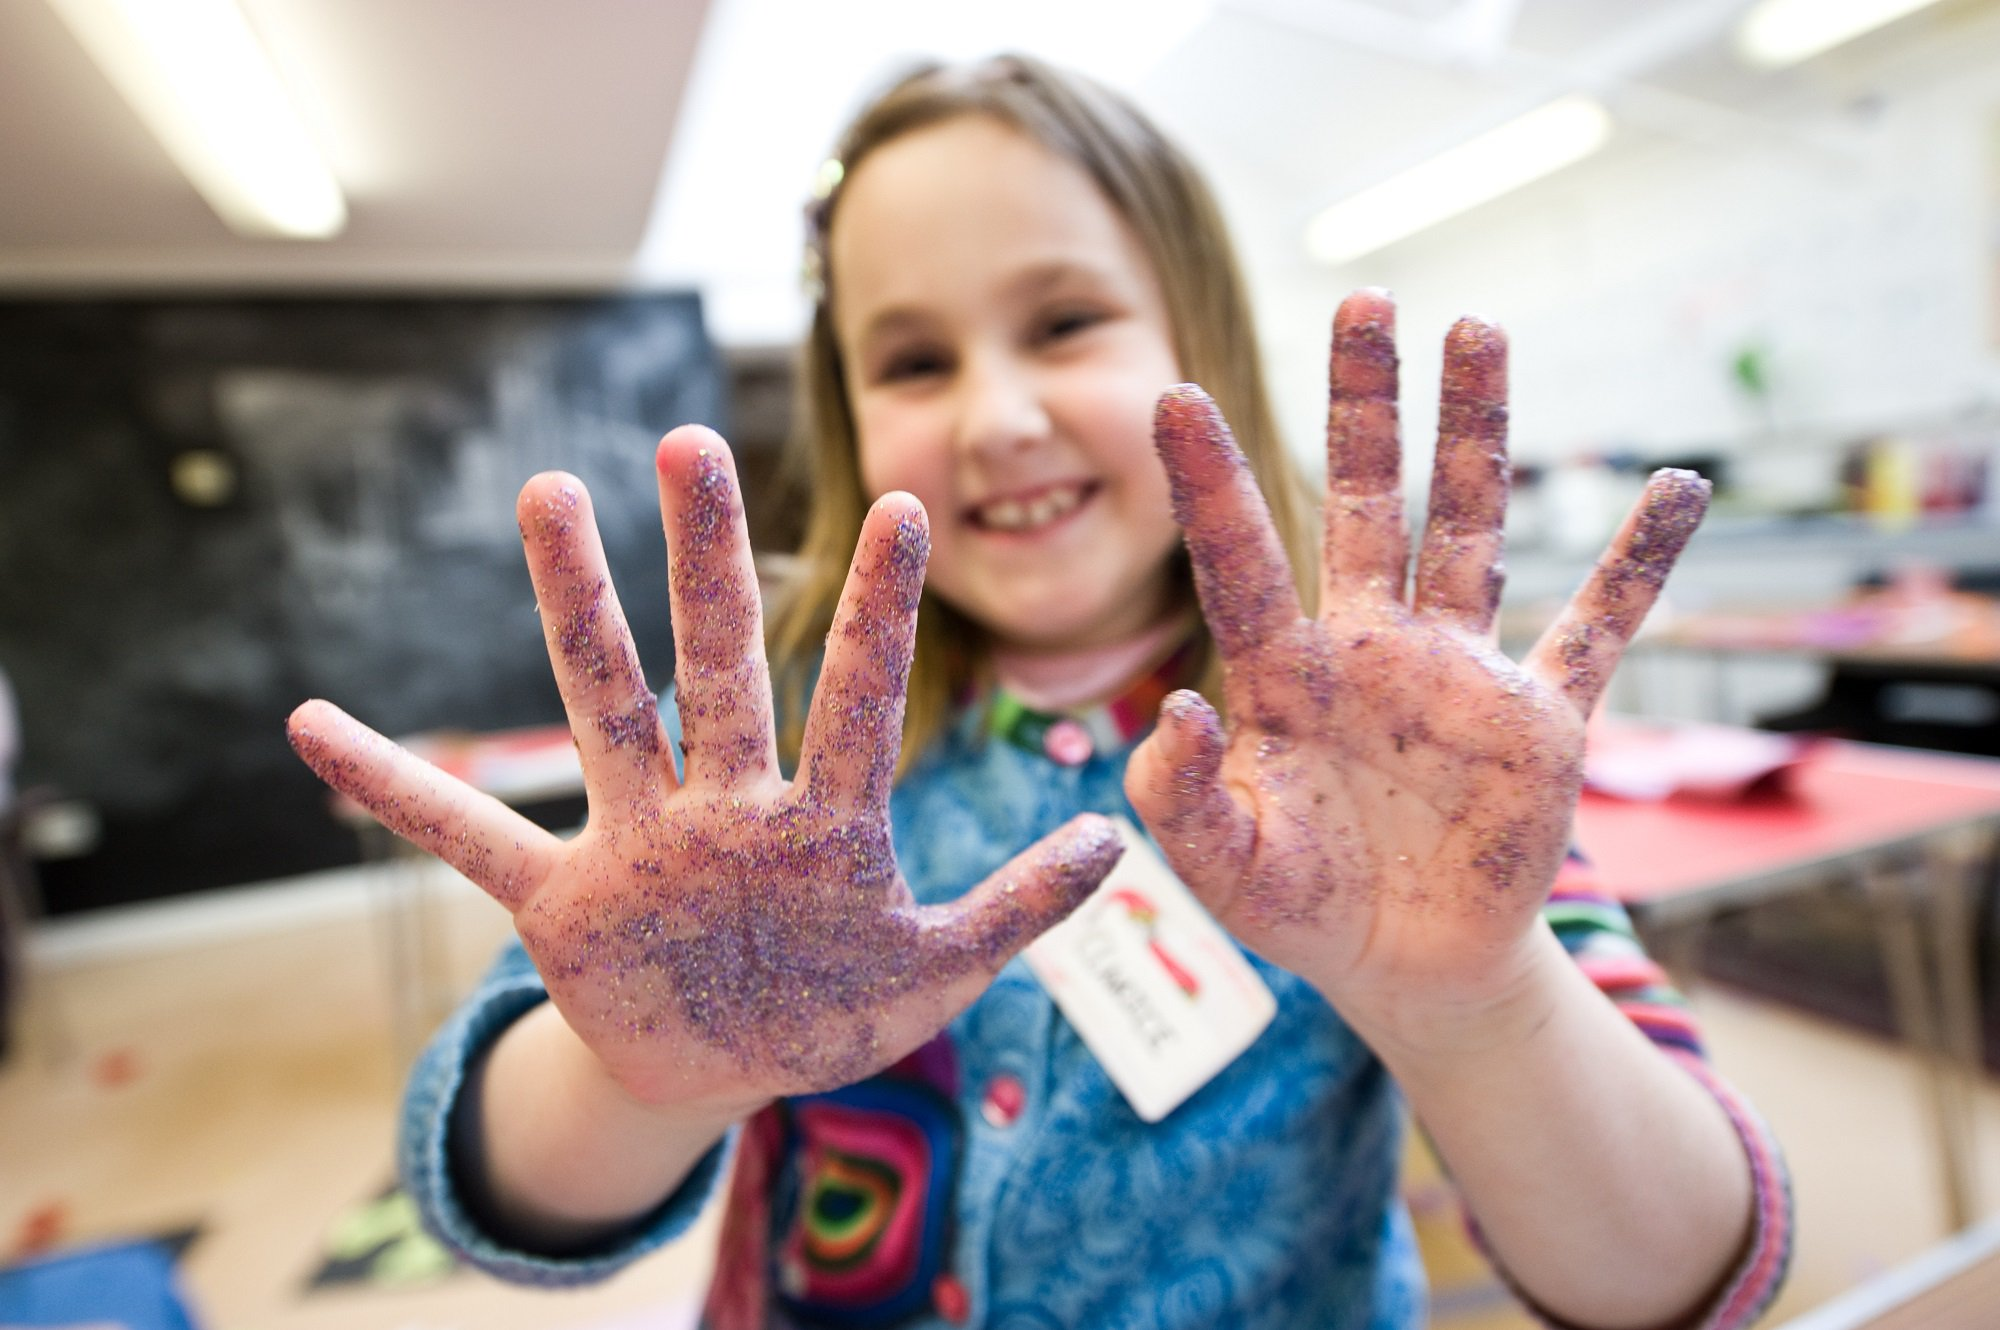 A girl with glitter on her hands shows them to the camera